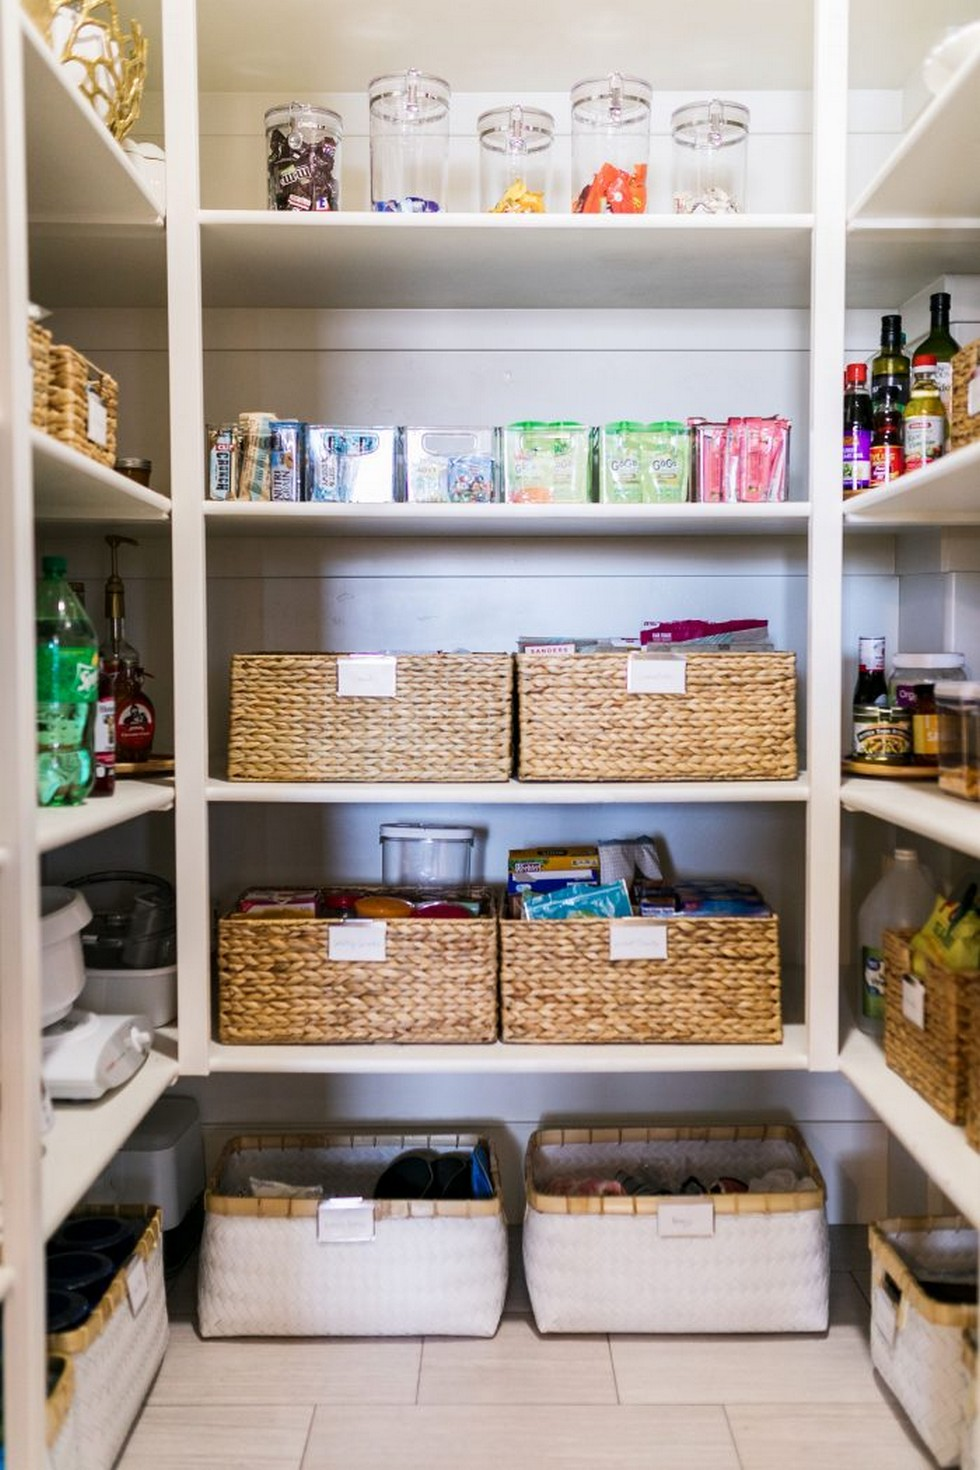 Finest Construction Concept of Pantry That You Must Know